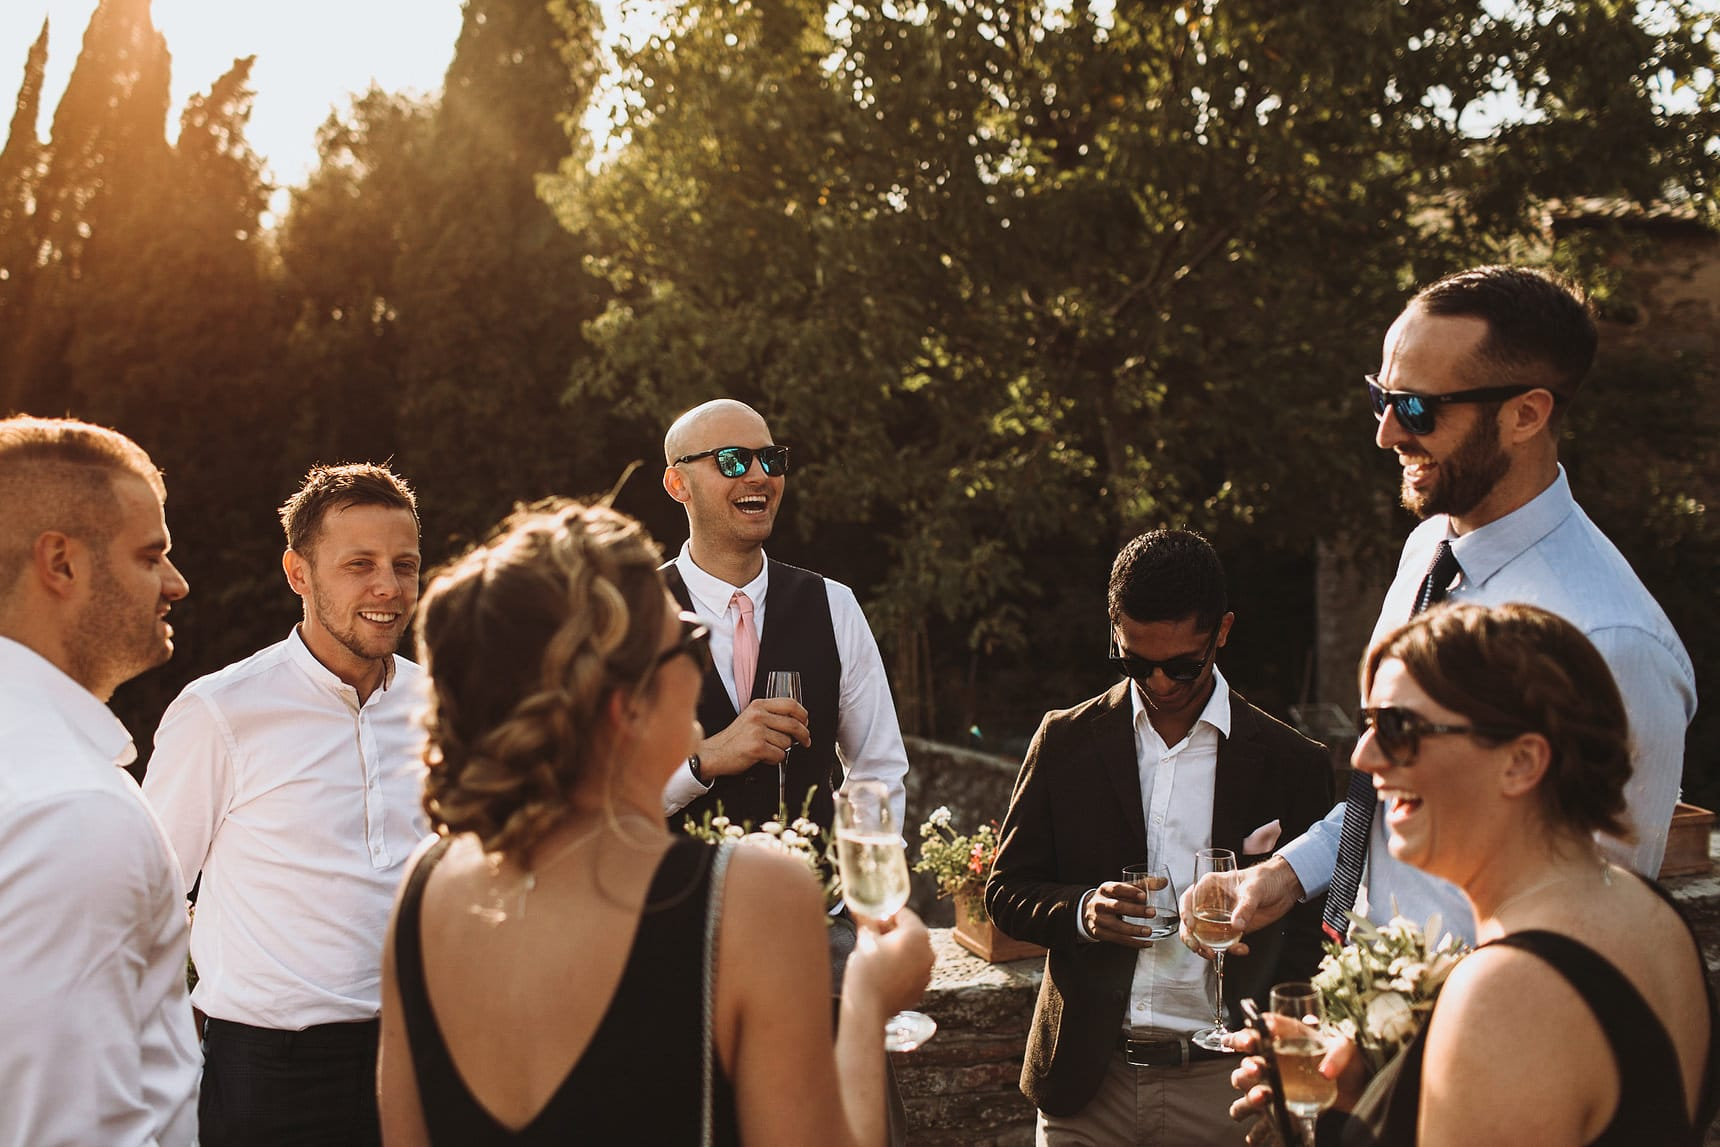 castello di gargonza wedding photographer tuscany